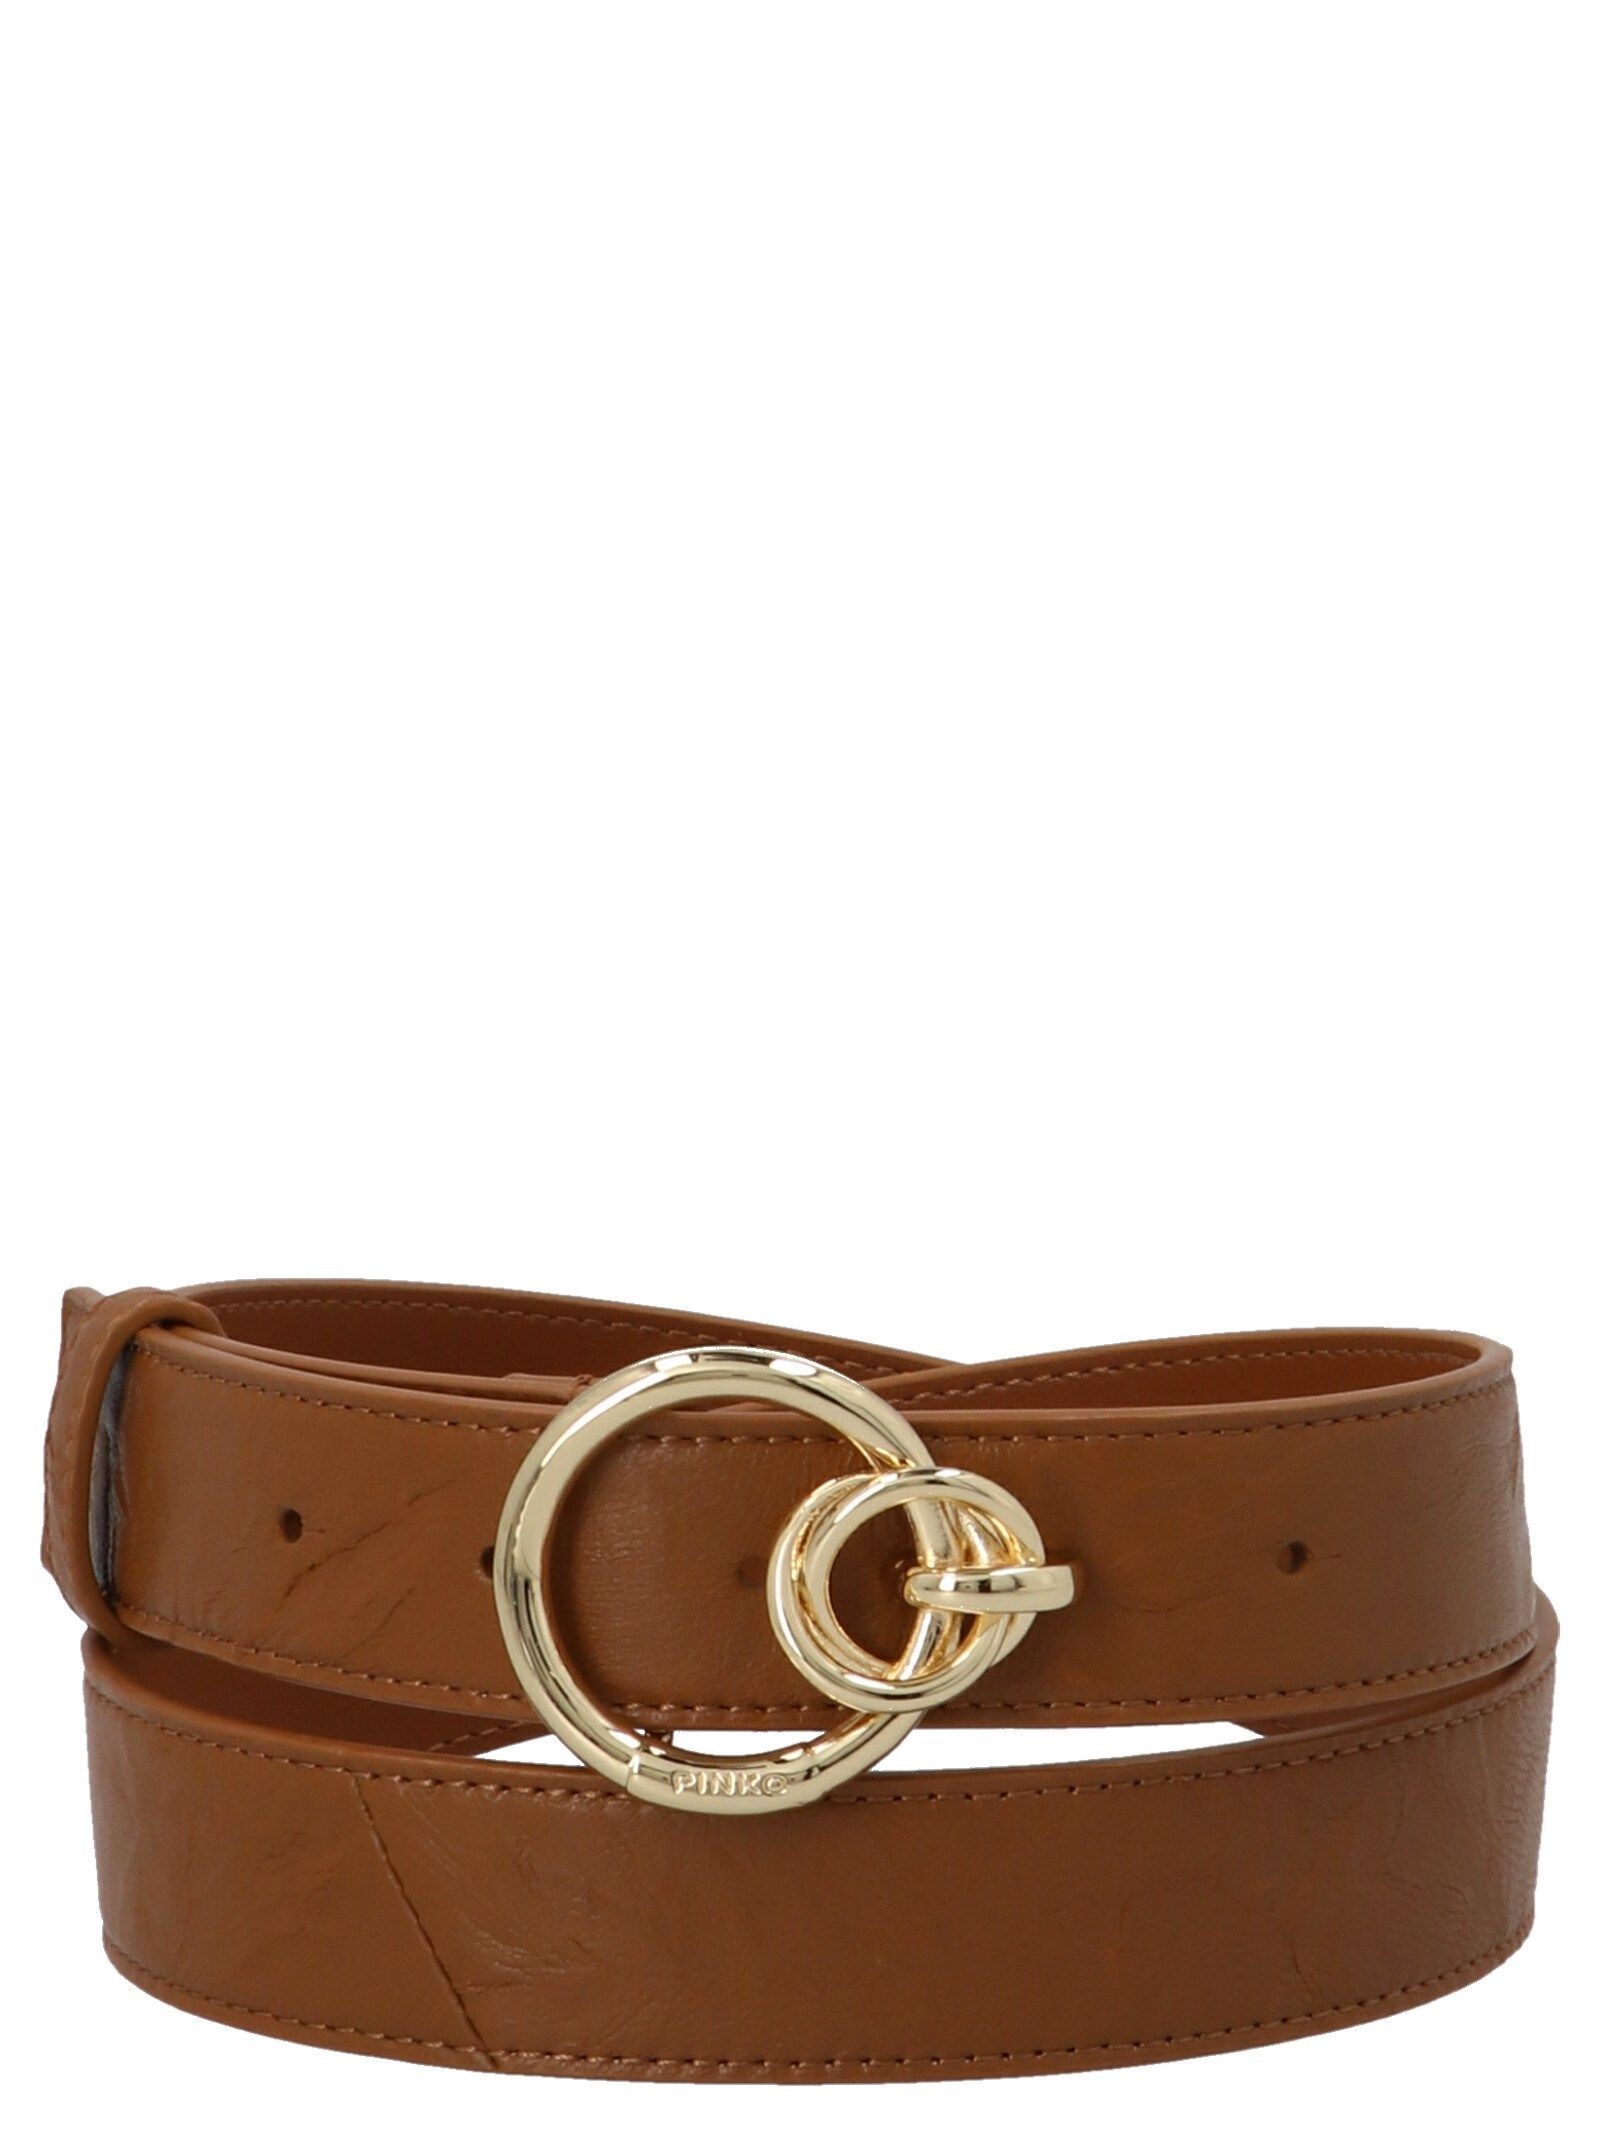 Pinko PINKO WOMEN'S BROWN OTHER MATERIALS BELT